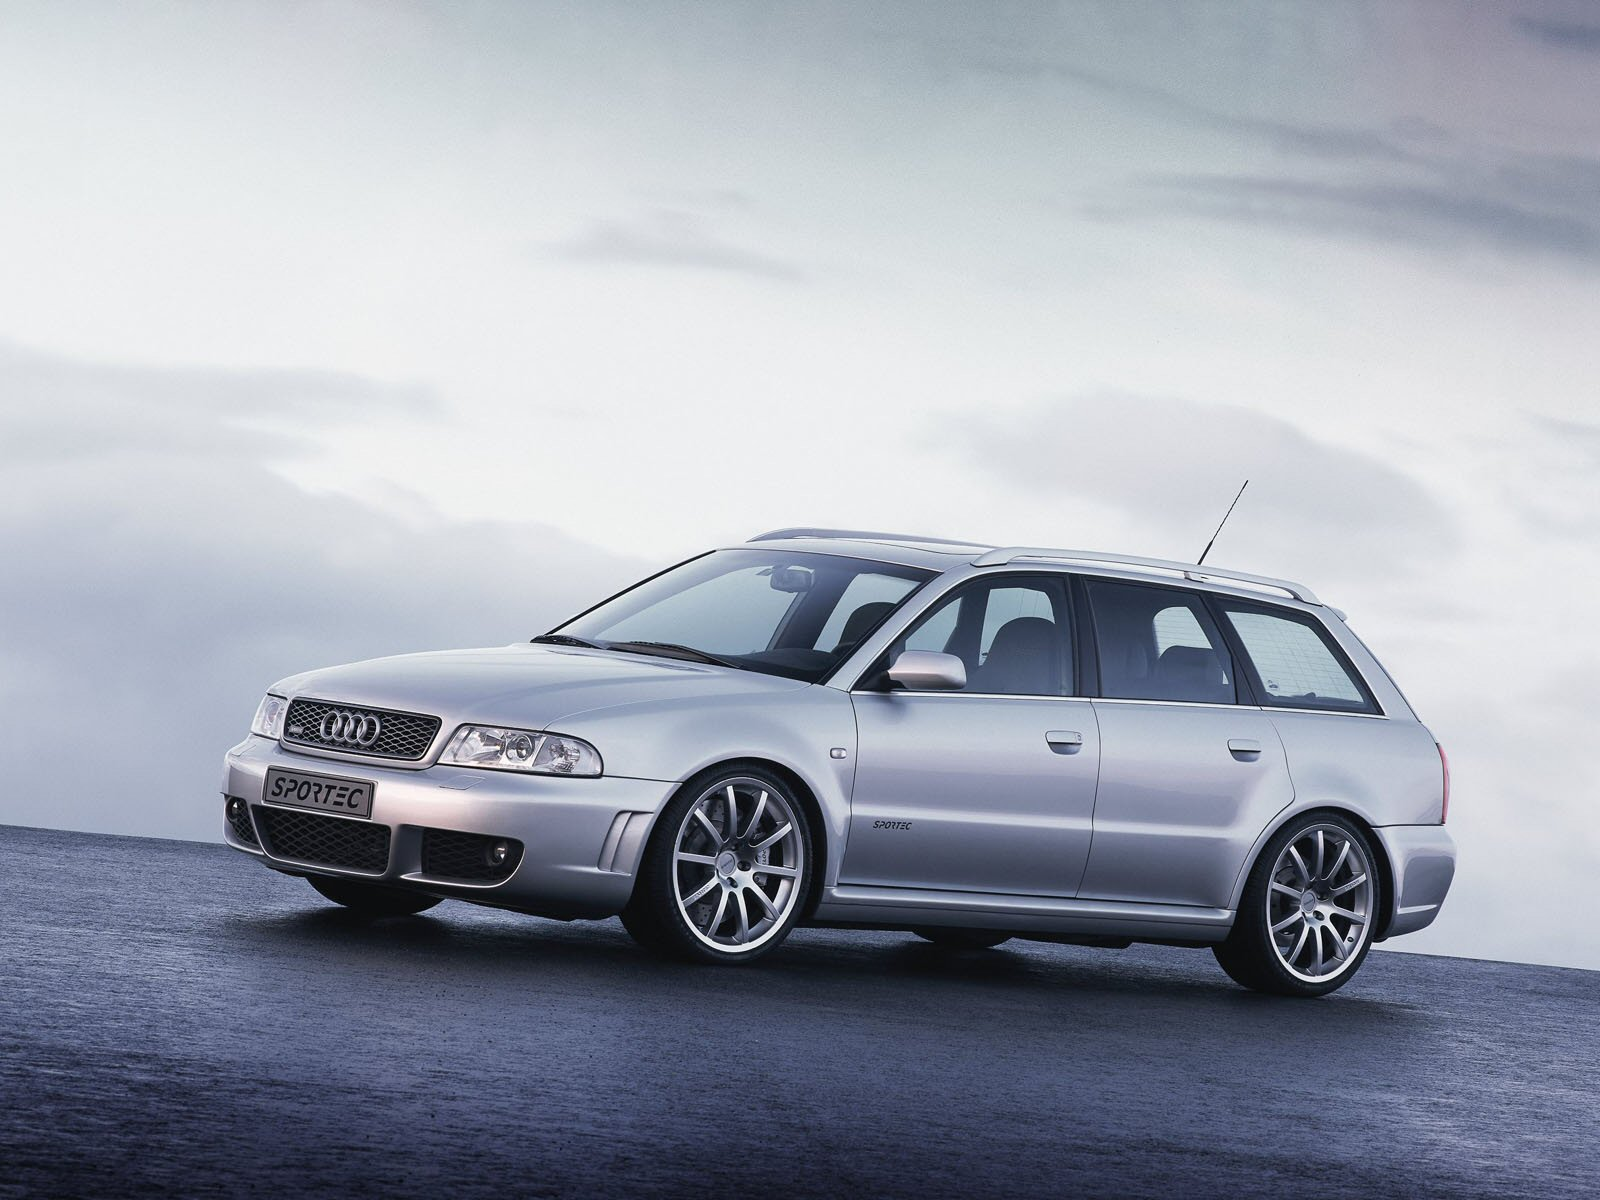 sportec audi rs4 avant rs460 photos photogallery with 3. Black Bedroom Furniture Sets. Home Design Ideas